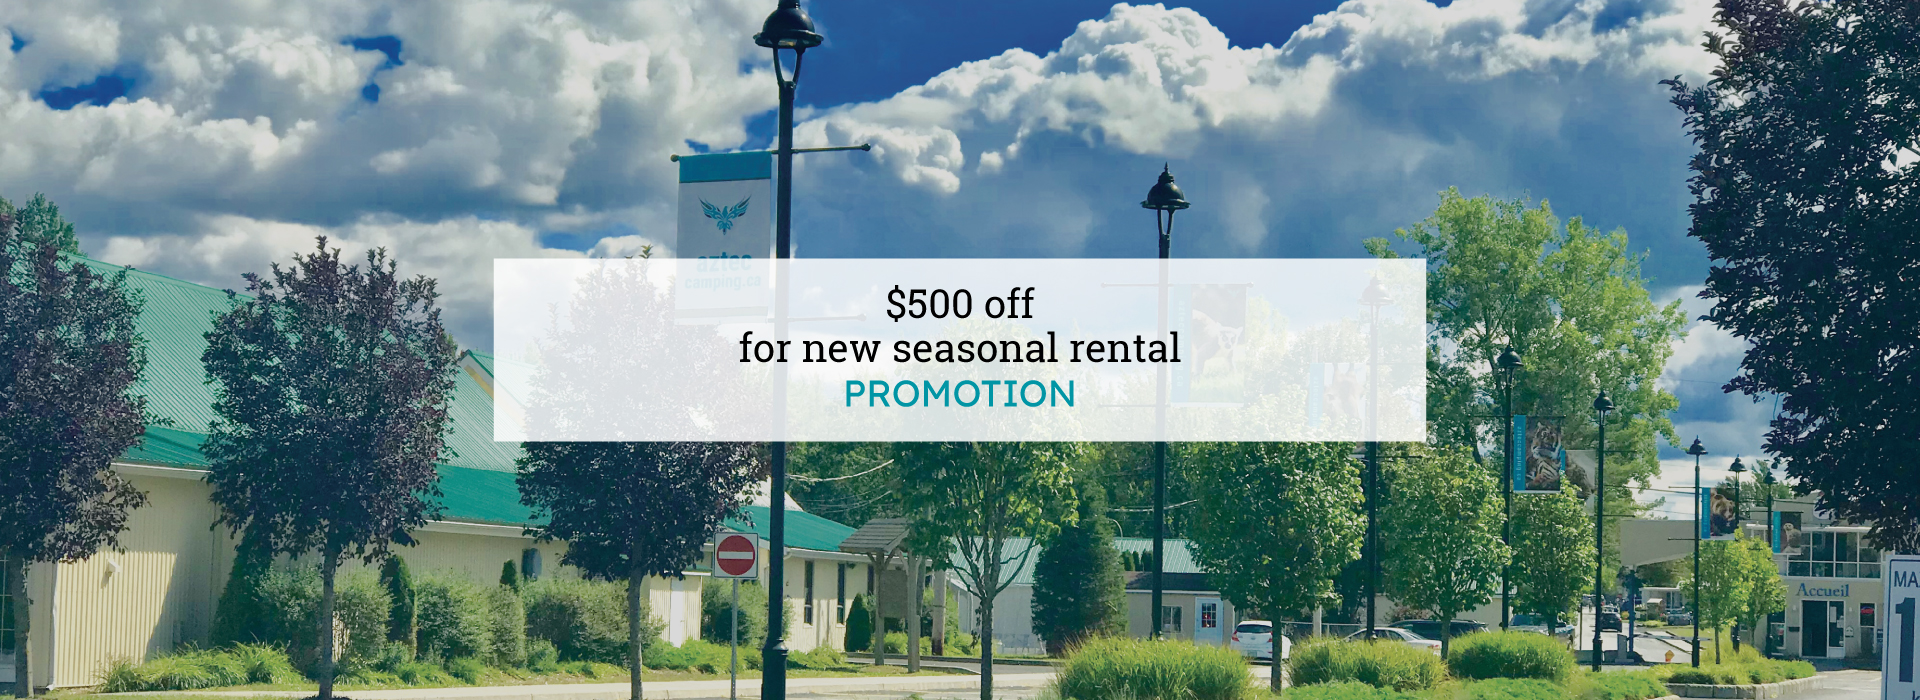 2020 New Seasonal Rental